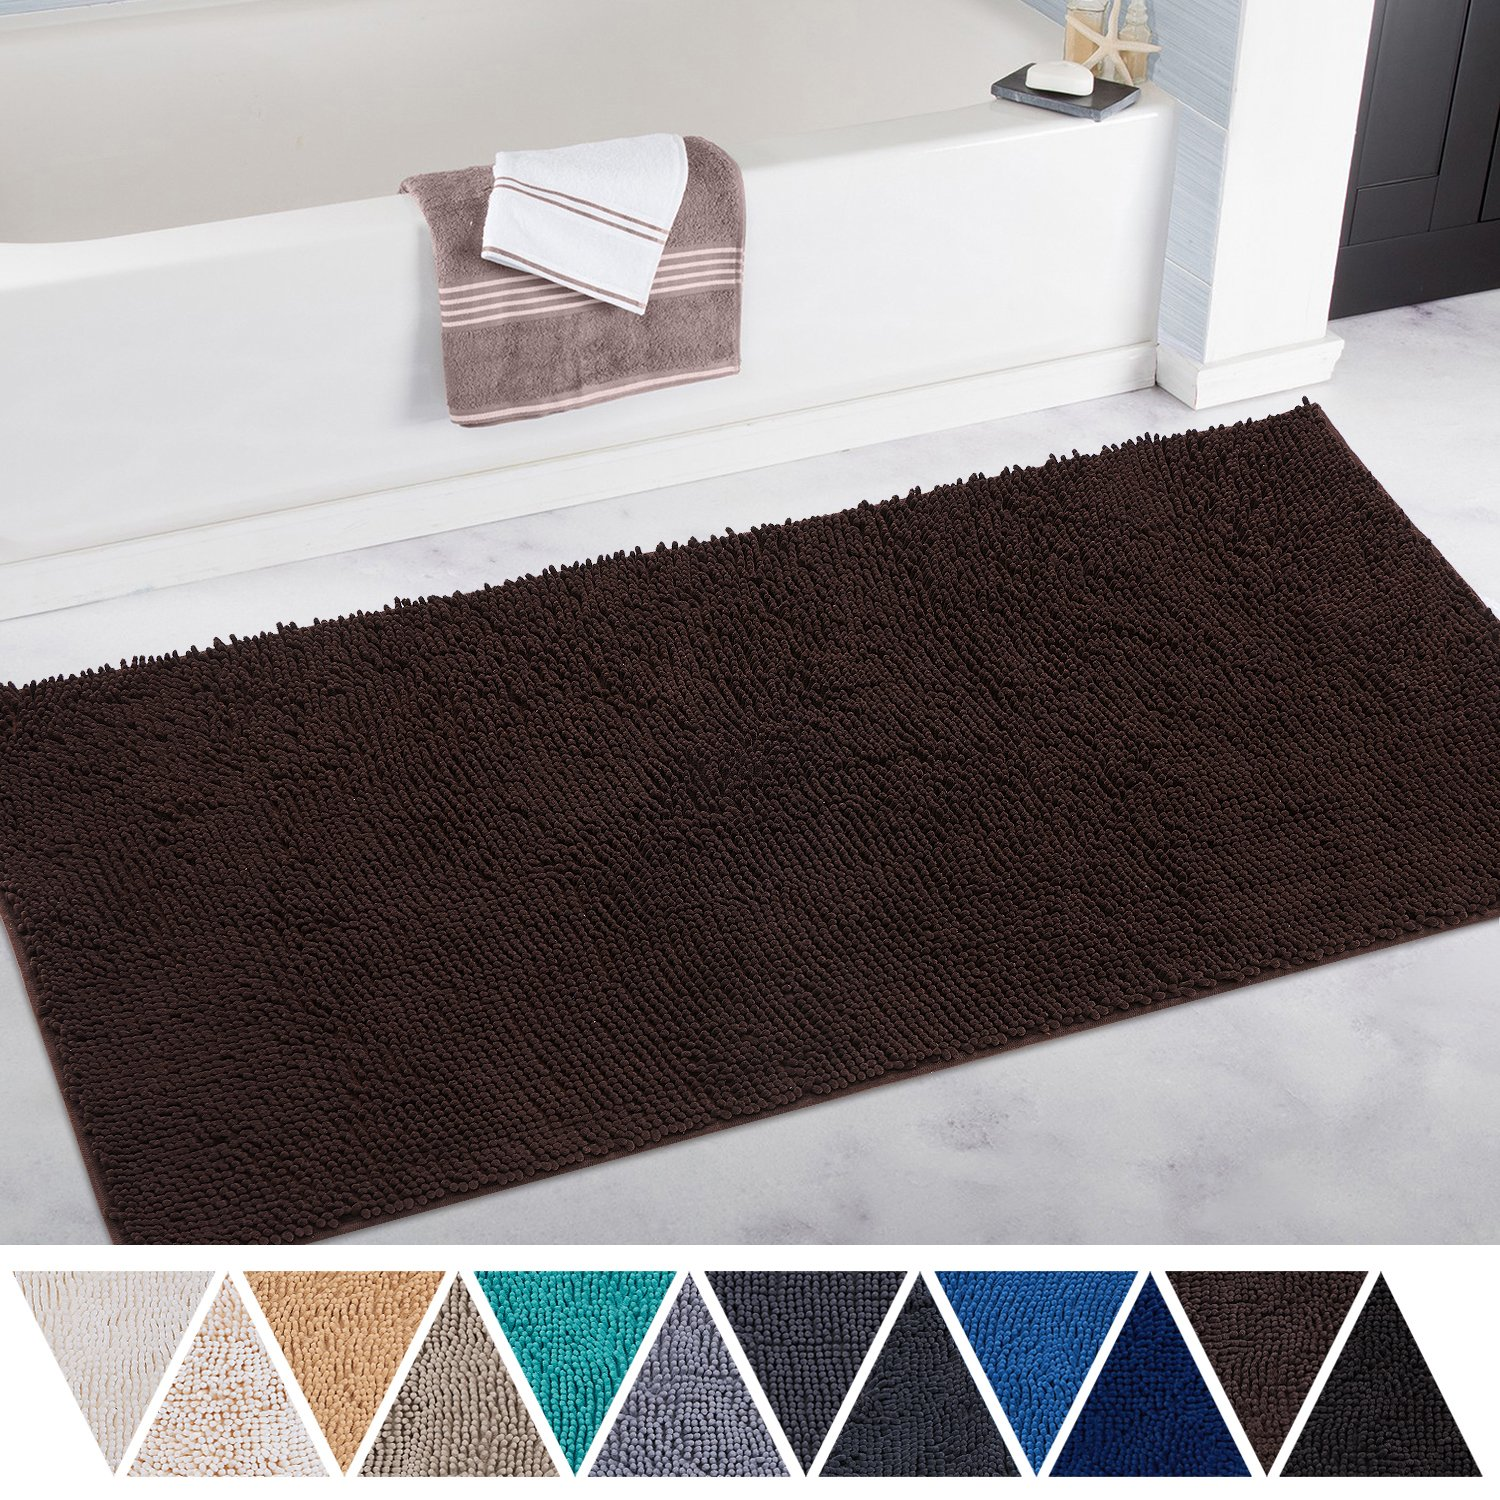 DEARTOWN Bath Mat Runner for Bathroom Rugs,Long Floor Mats,Extra Soft, Absorbent, Anti-Skid TPR Bottom,Machine-Washable, Perfect for Tub, Shower & Doormat(27.5X47 inch Brown)